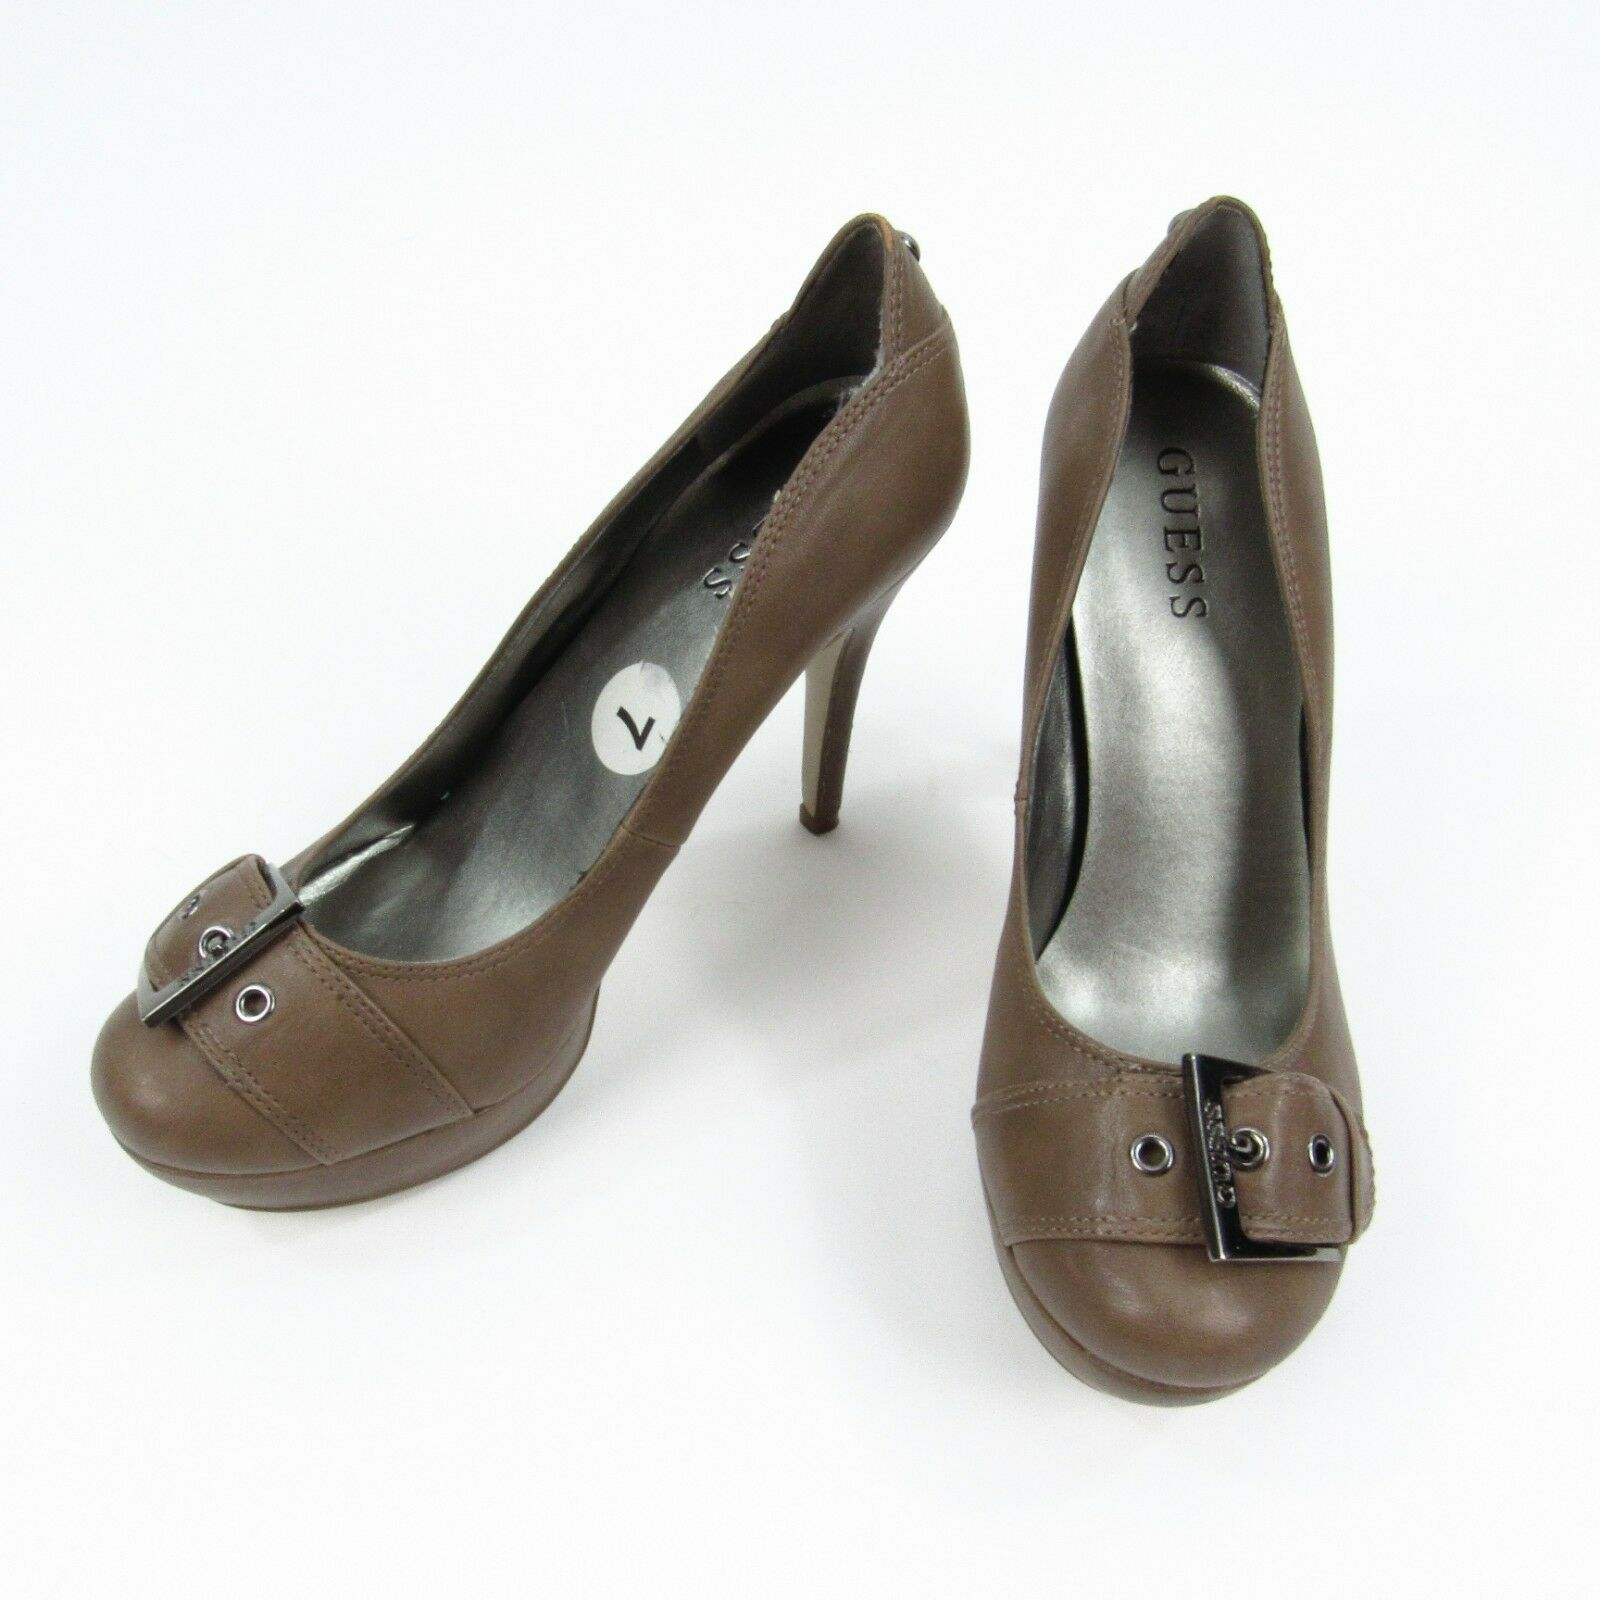 GUESS Women's Size 7 Heels Brown High Closed Toe